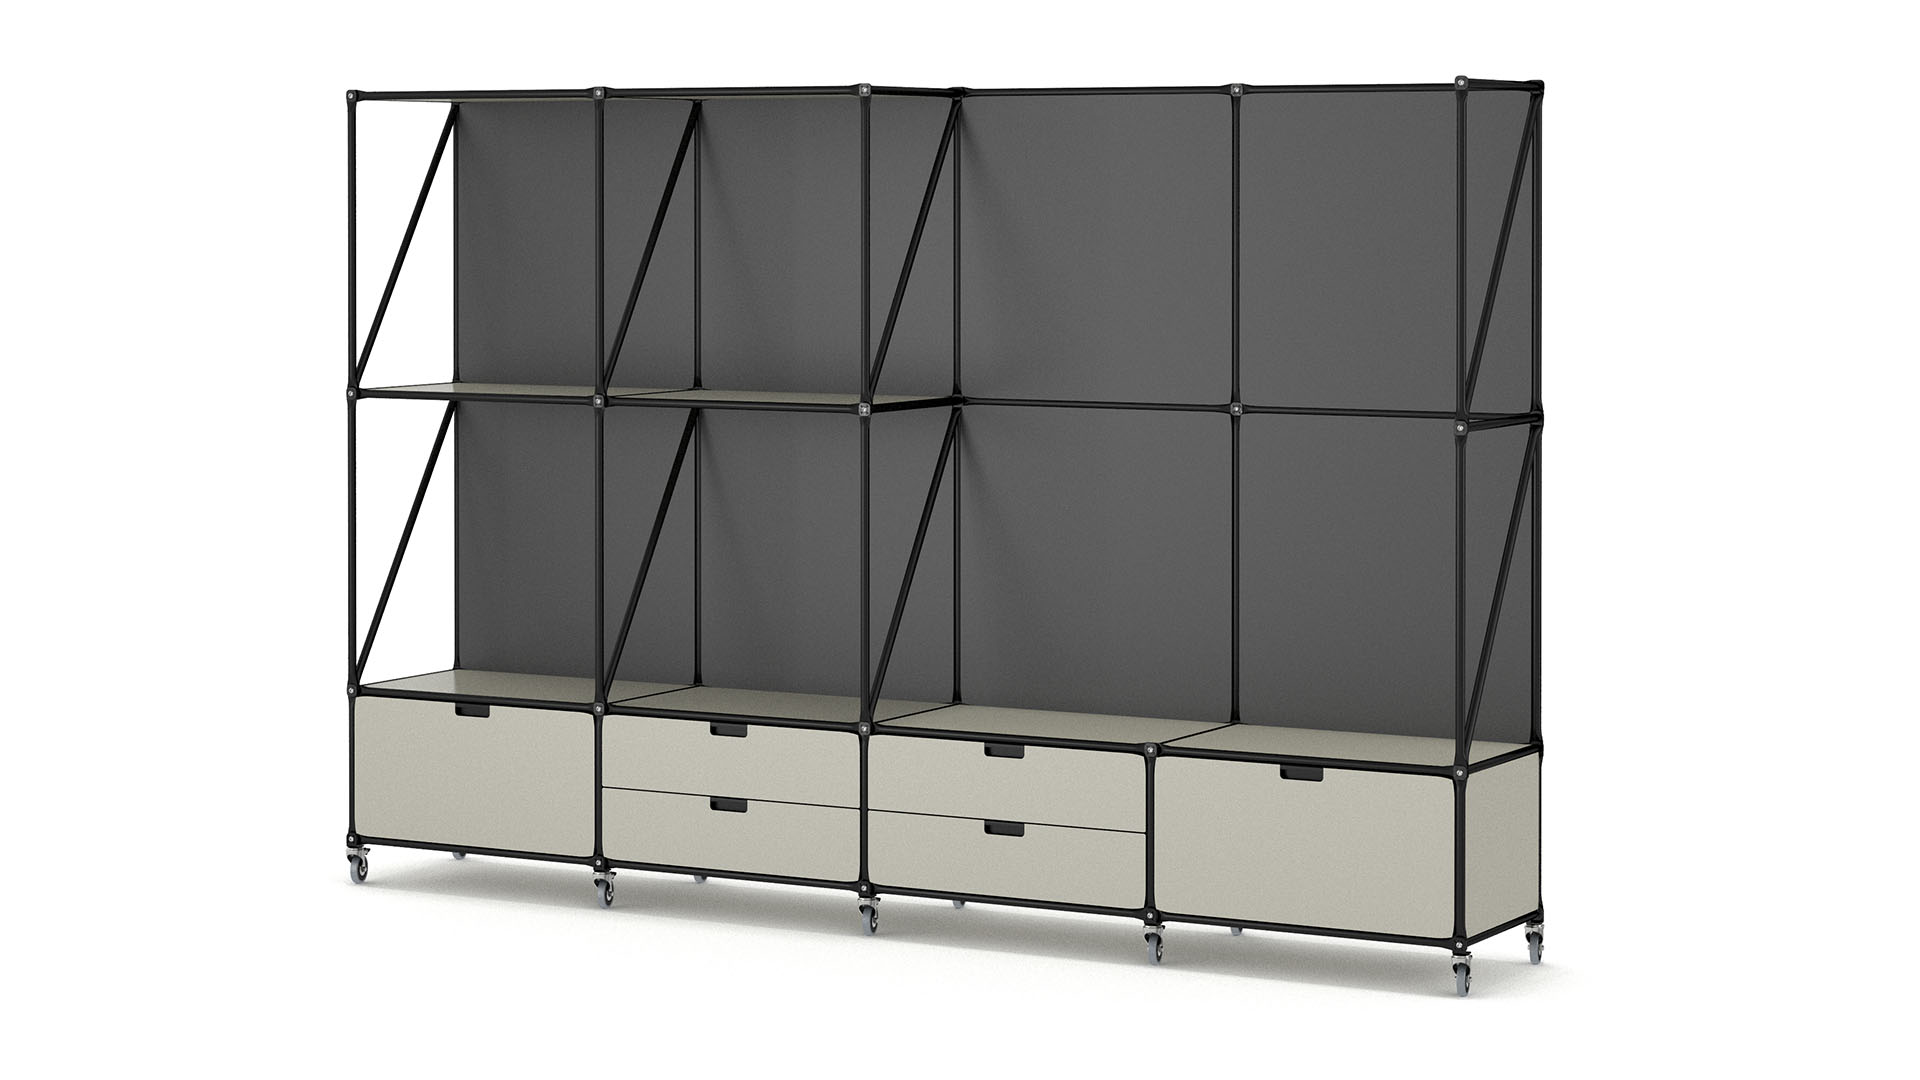 System 180: Our furniture assembly system - individual & functional